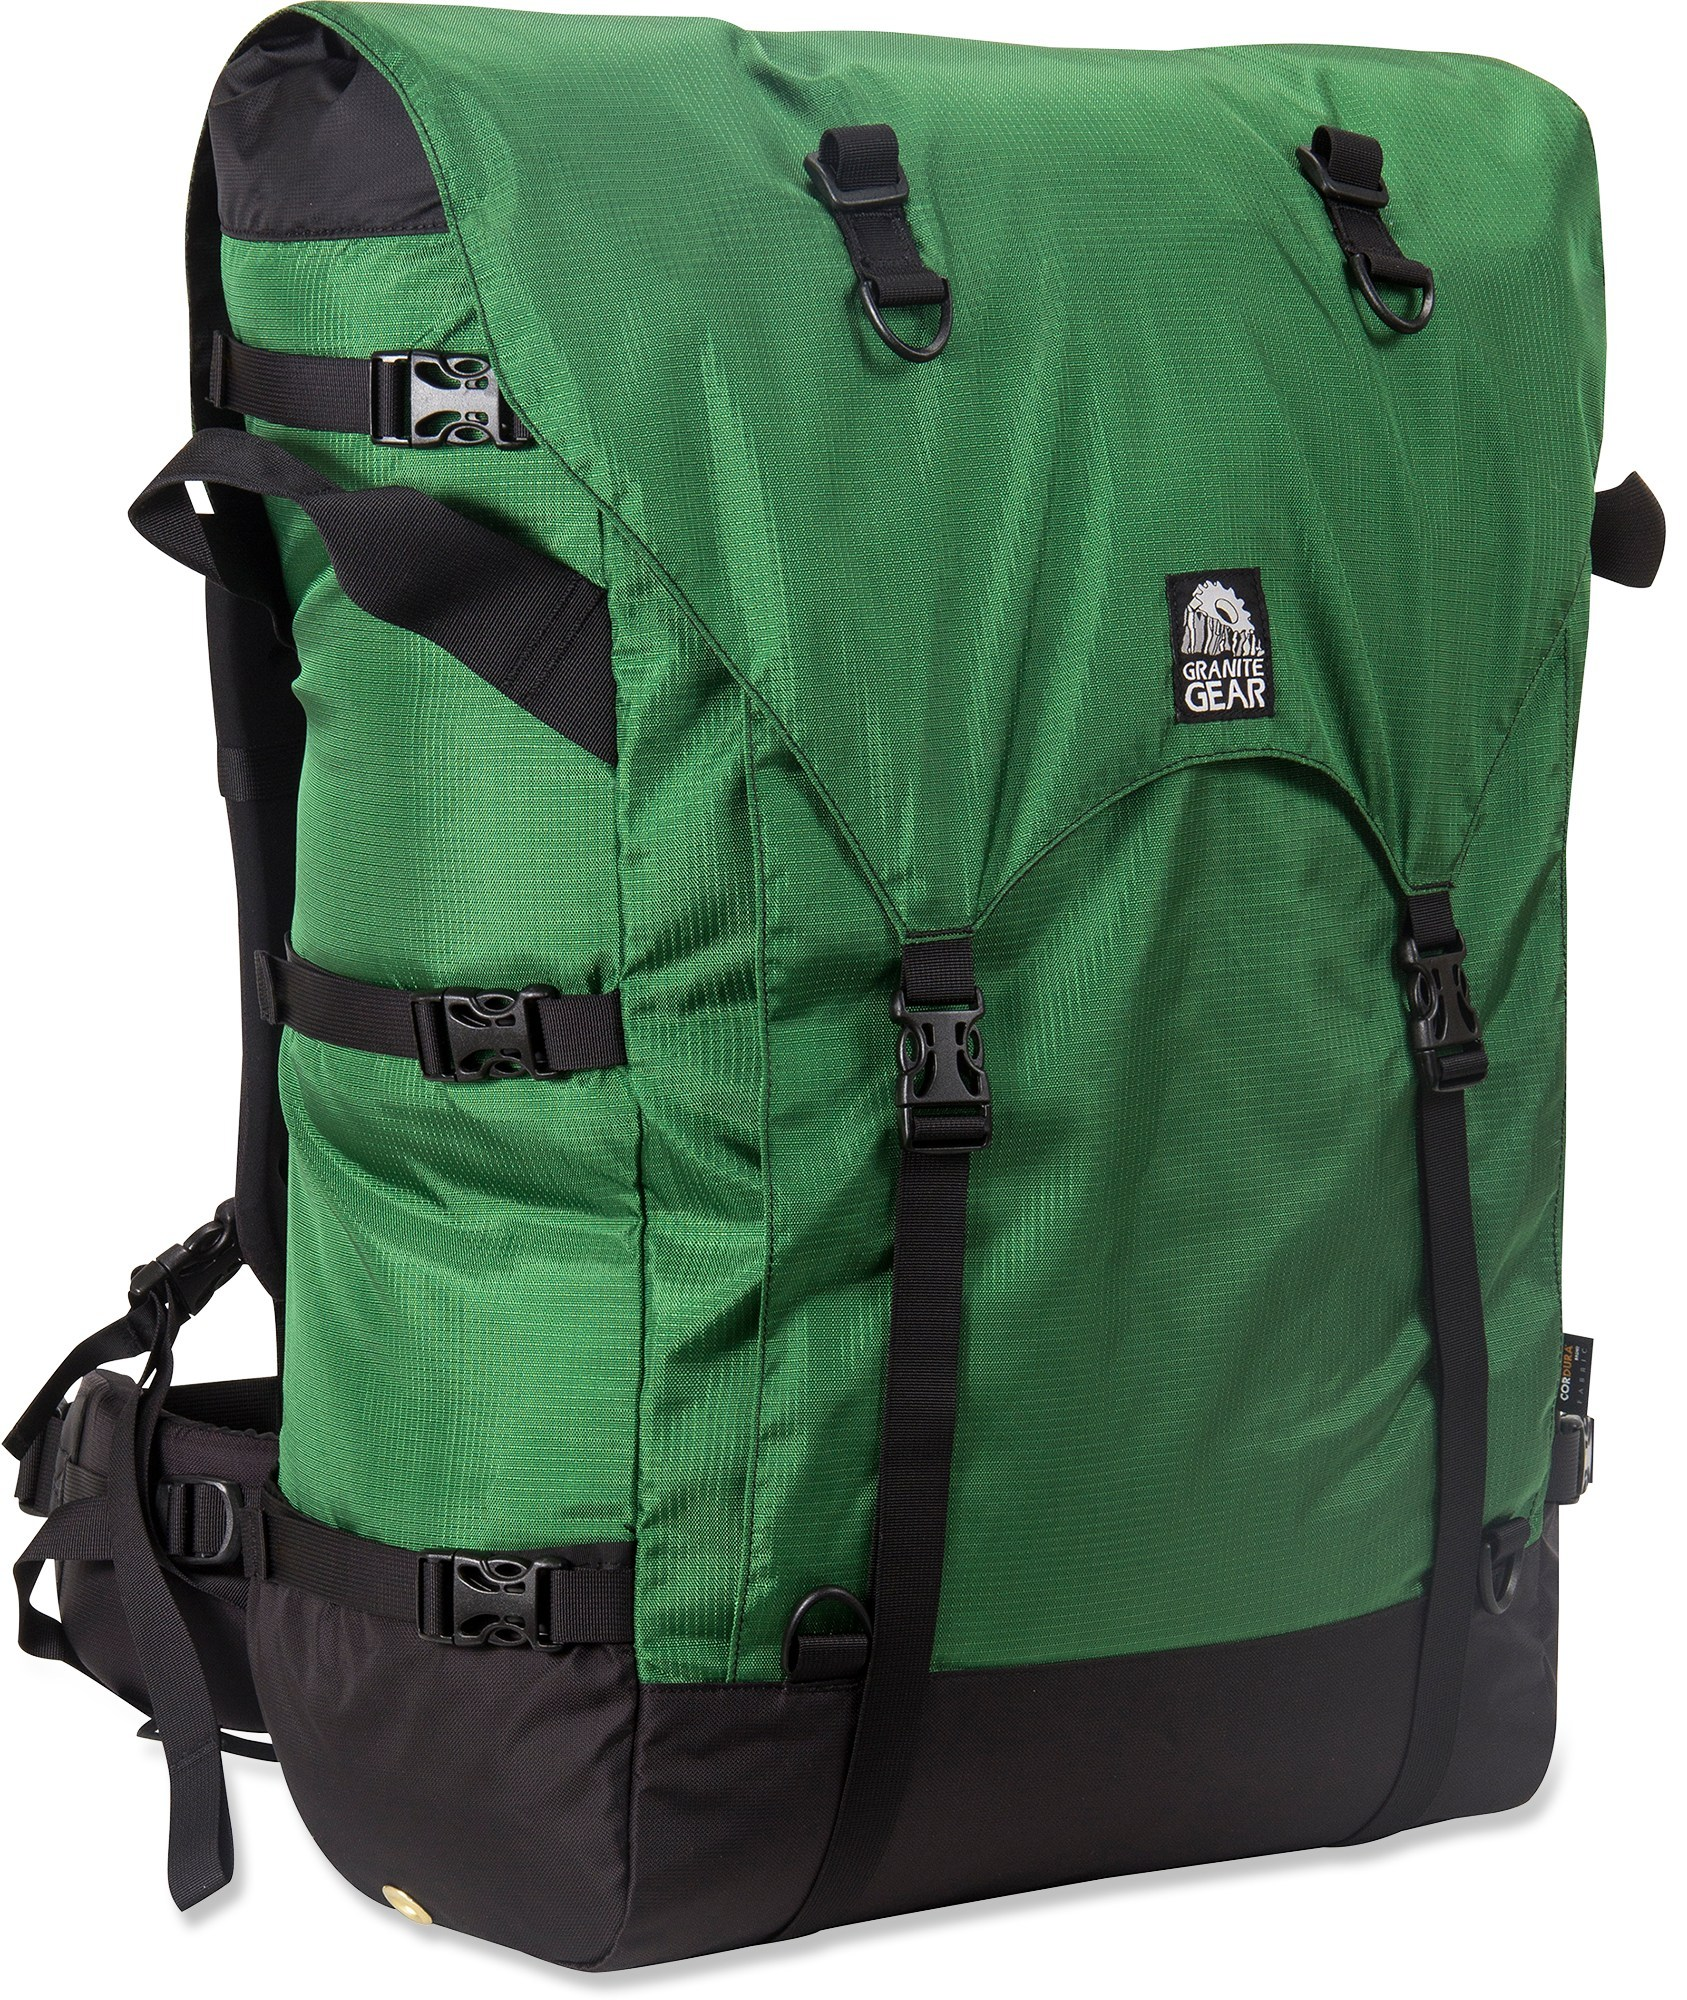 Granite Gear Quetico 5000 Portage Pack